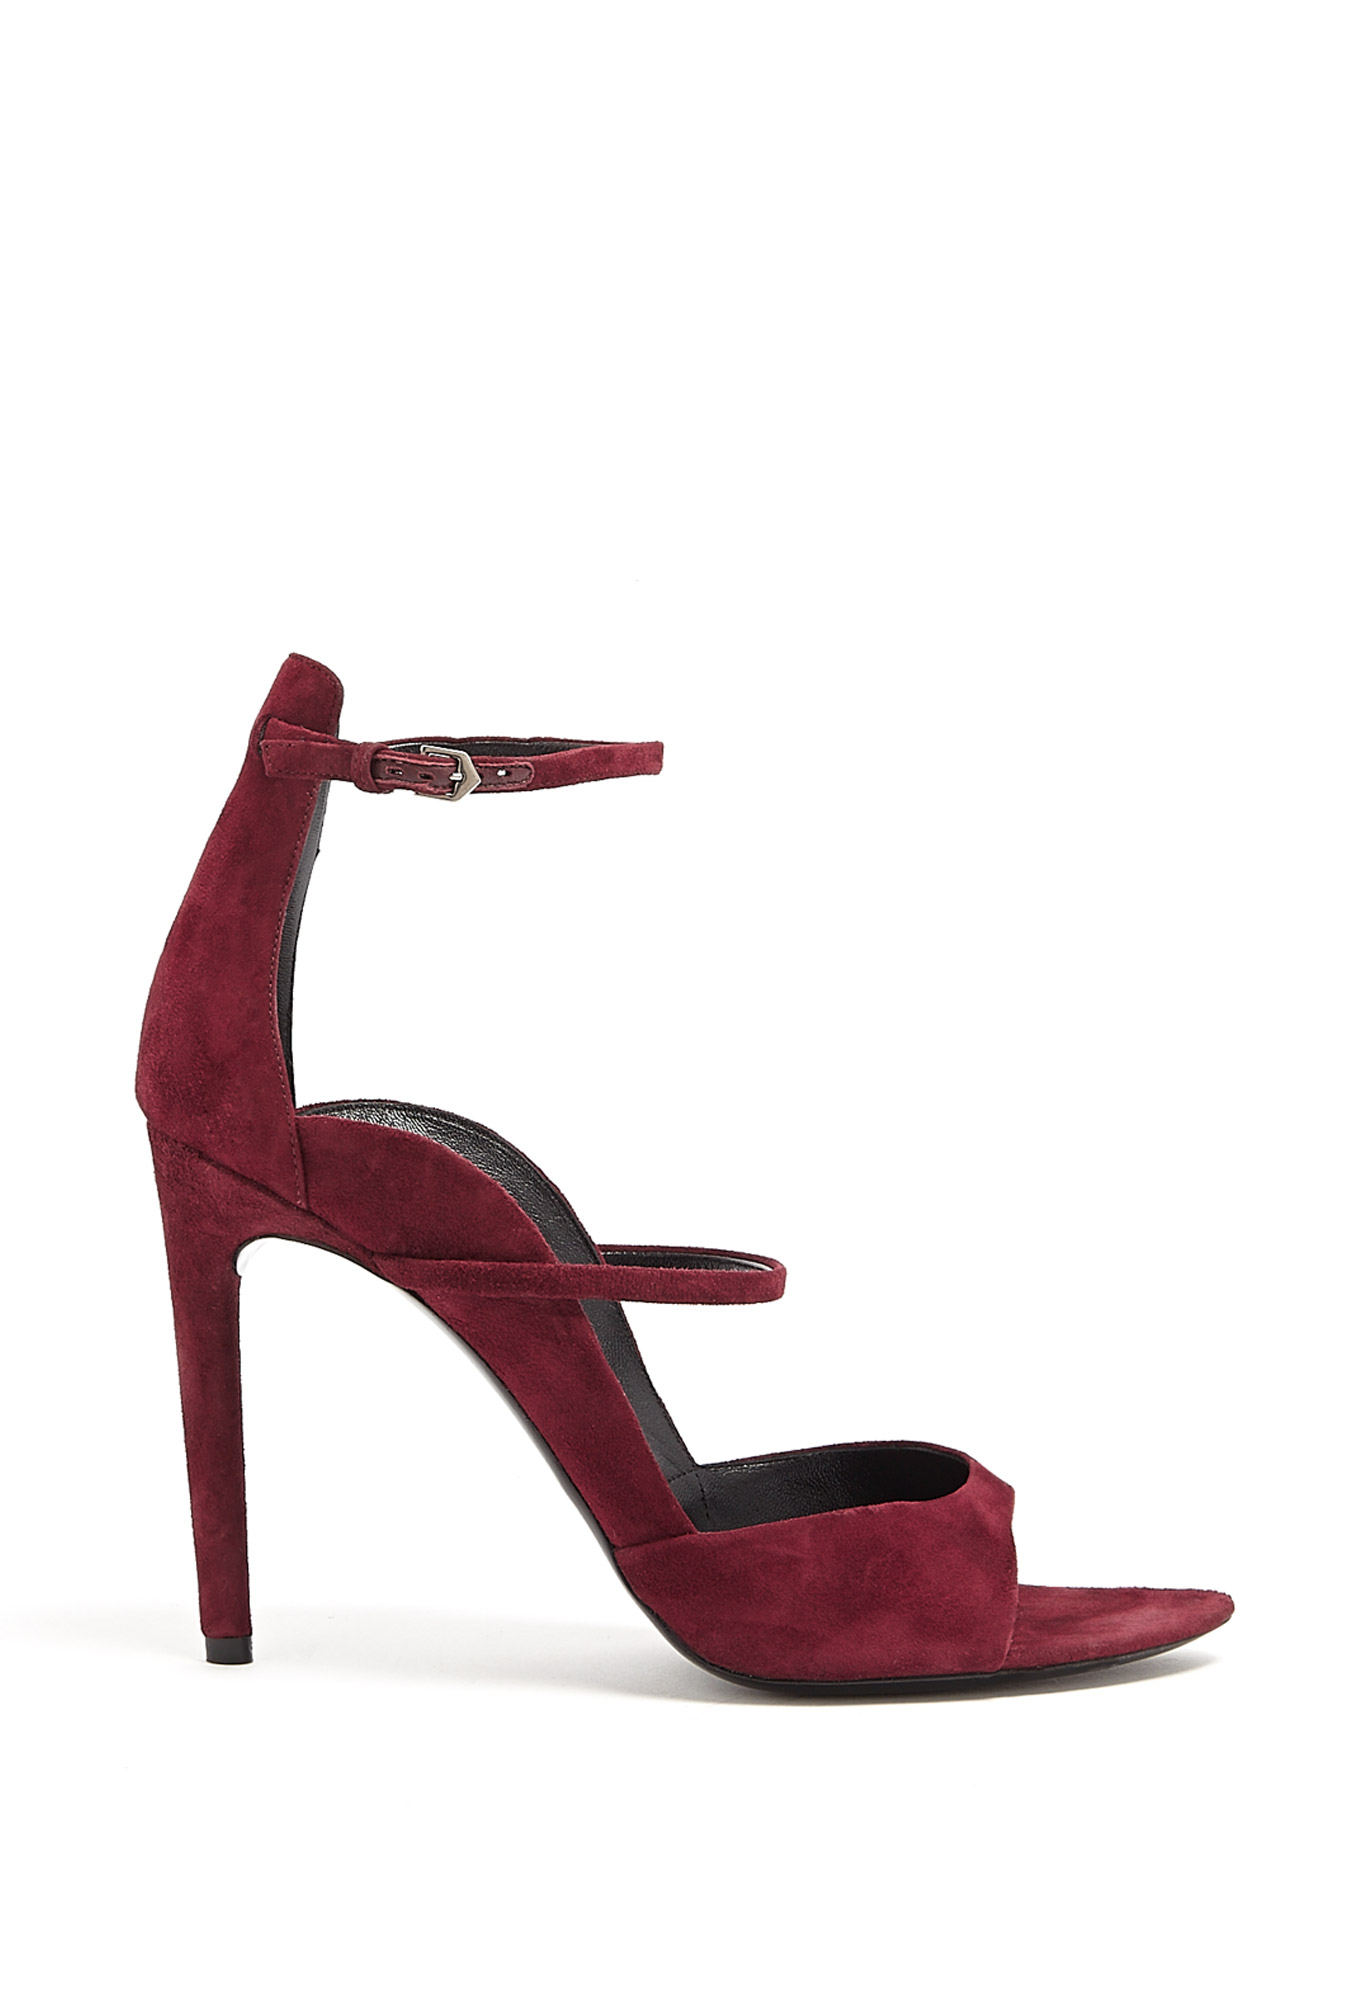 proenza schouler multi strap high heel sandals in red bordeaux lyst. Black Bedroom Furniture Sets. Home Design Ideas